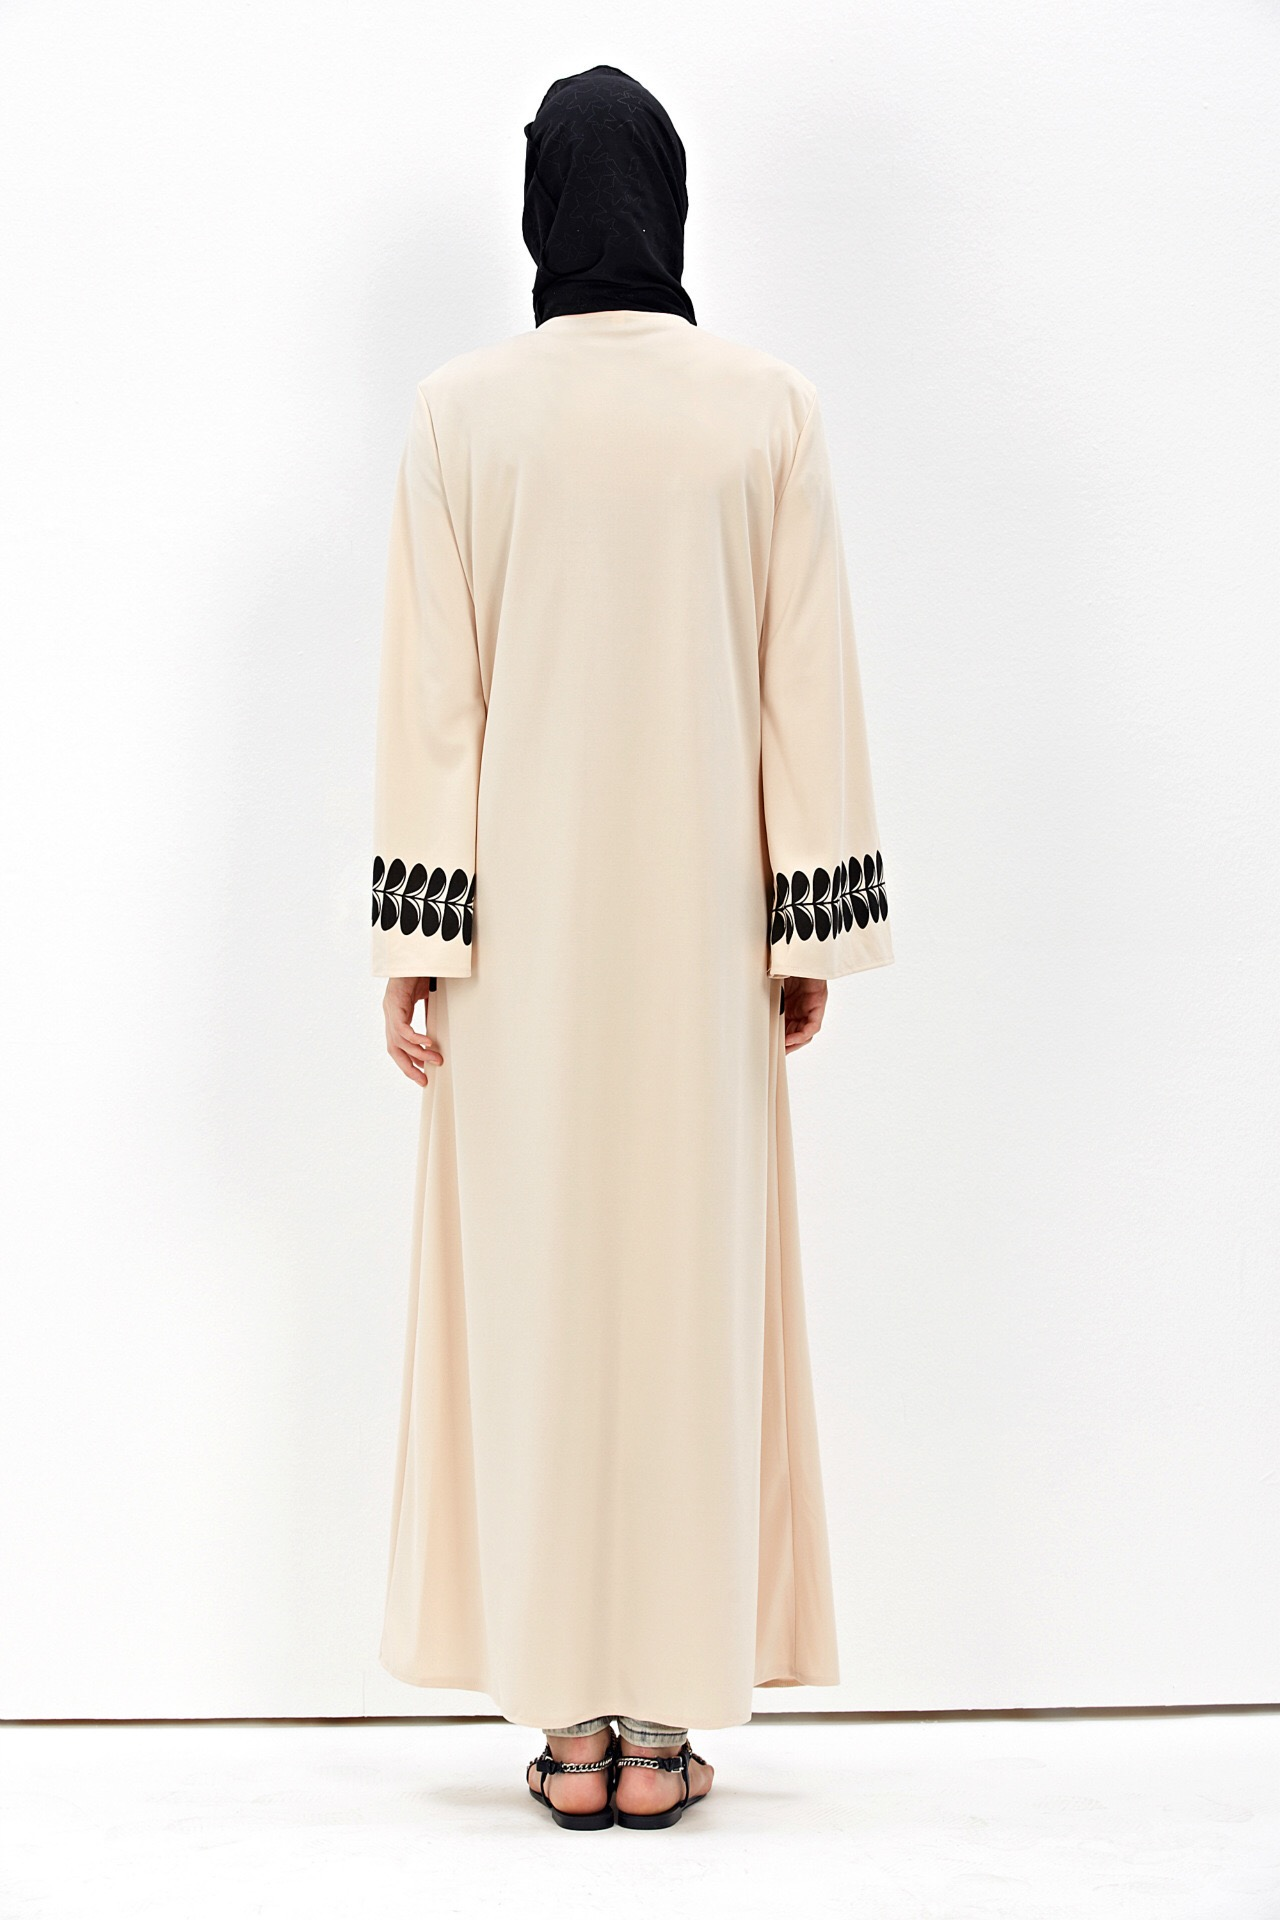 Dubai Style Abaya Dresses for Modest Women Long Sleeve Dress Polyester Islamic Clothing Abayas